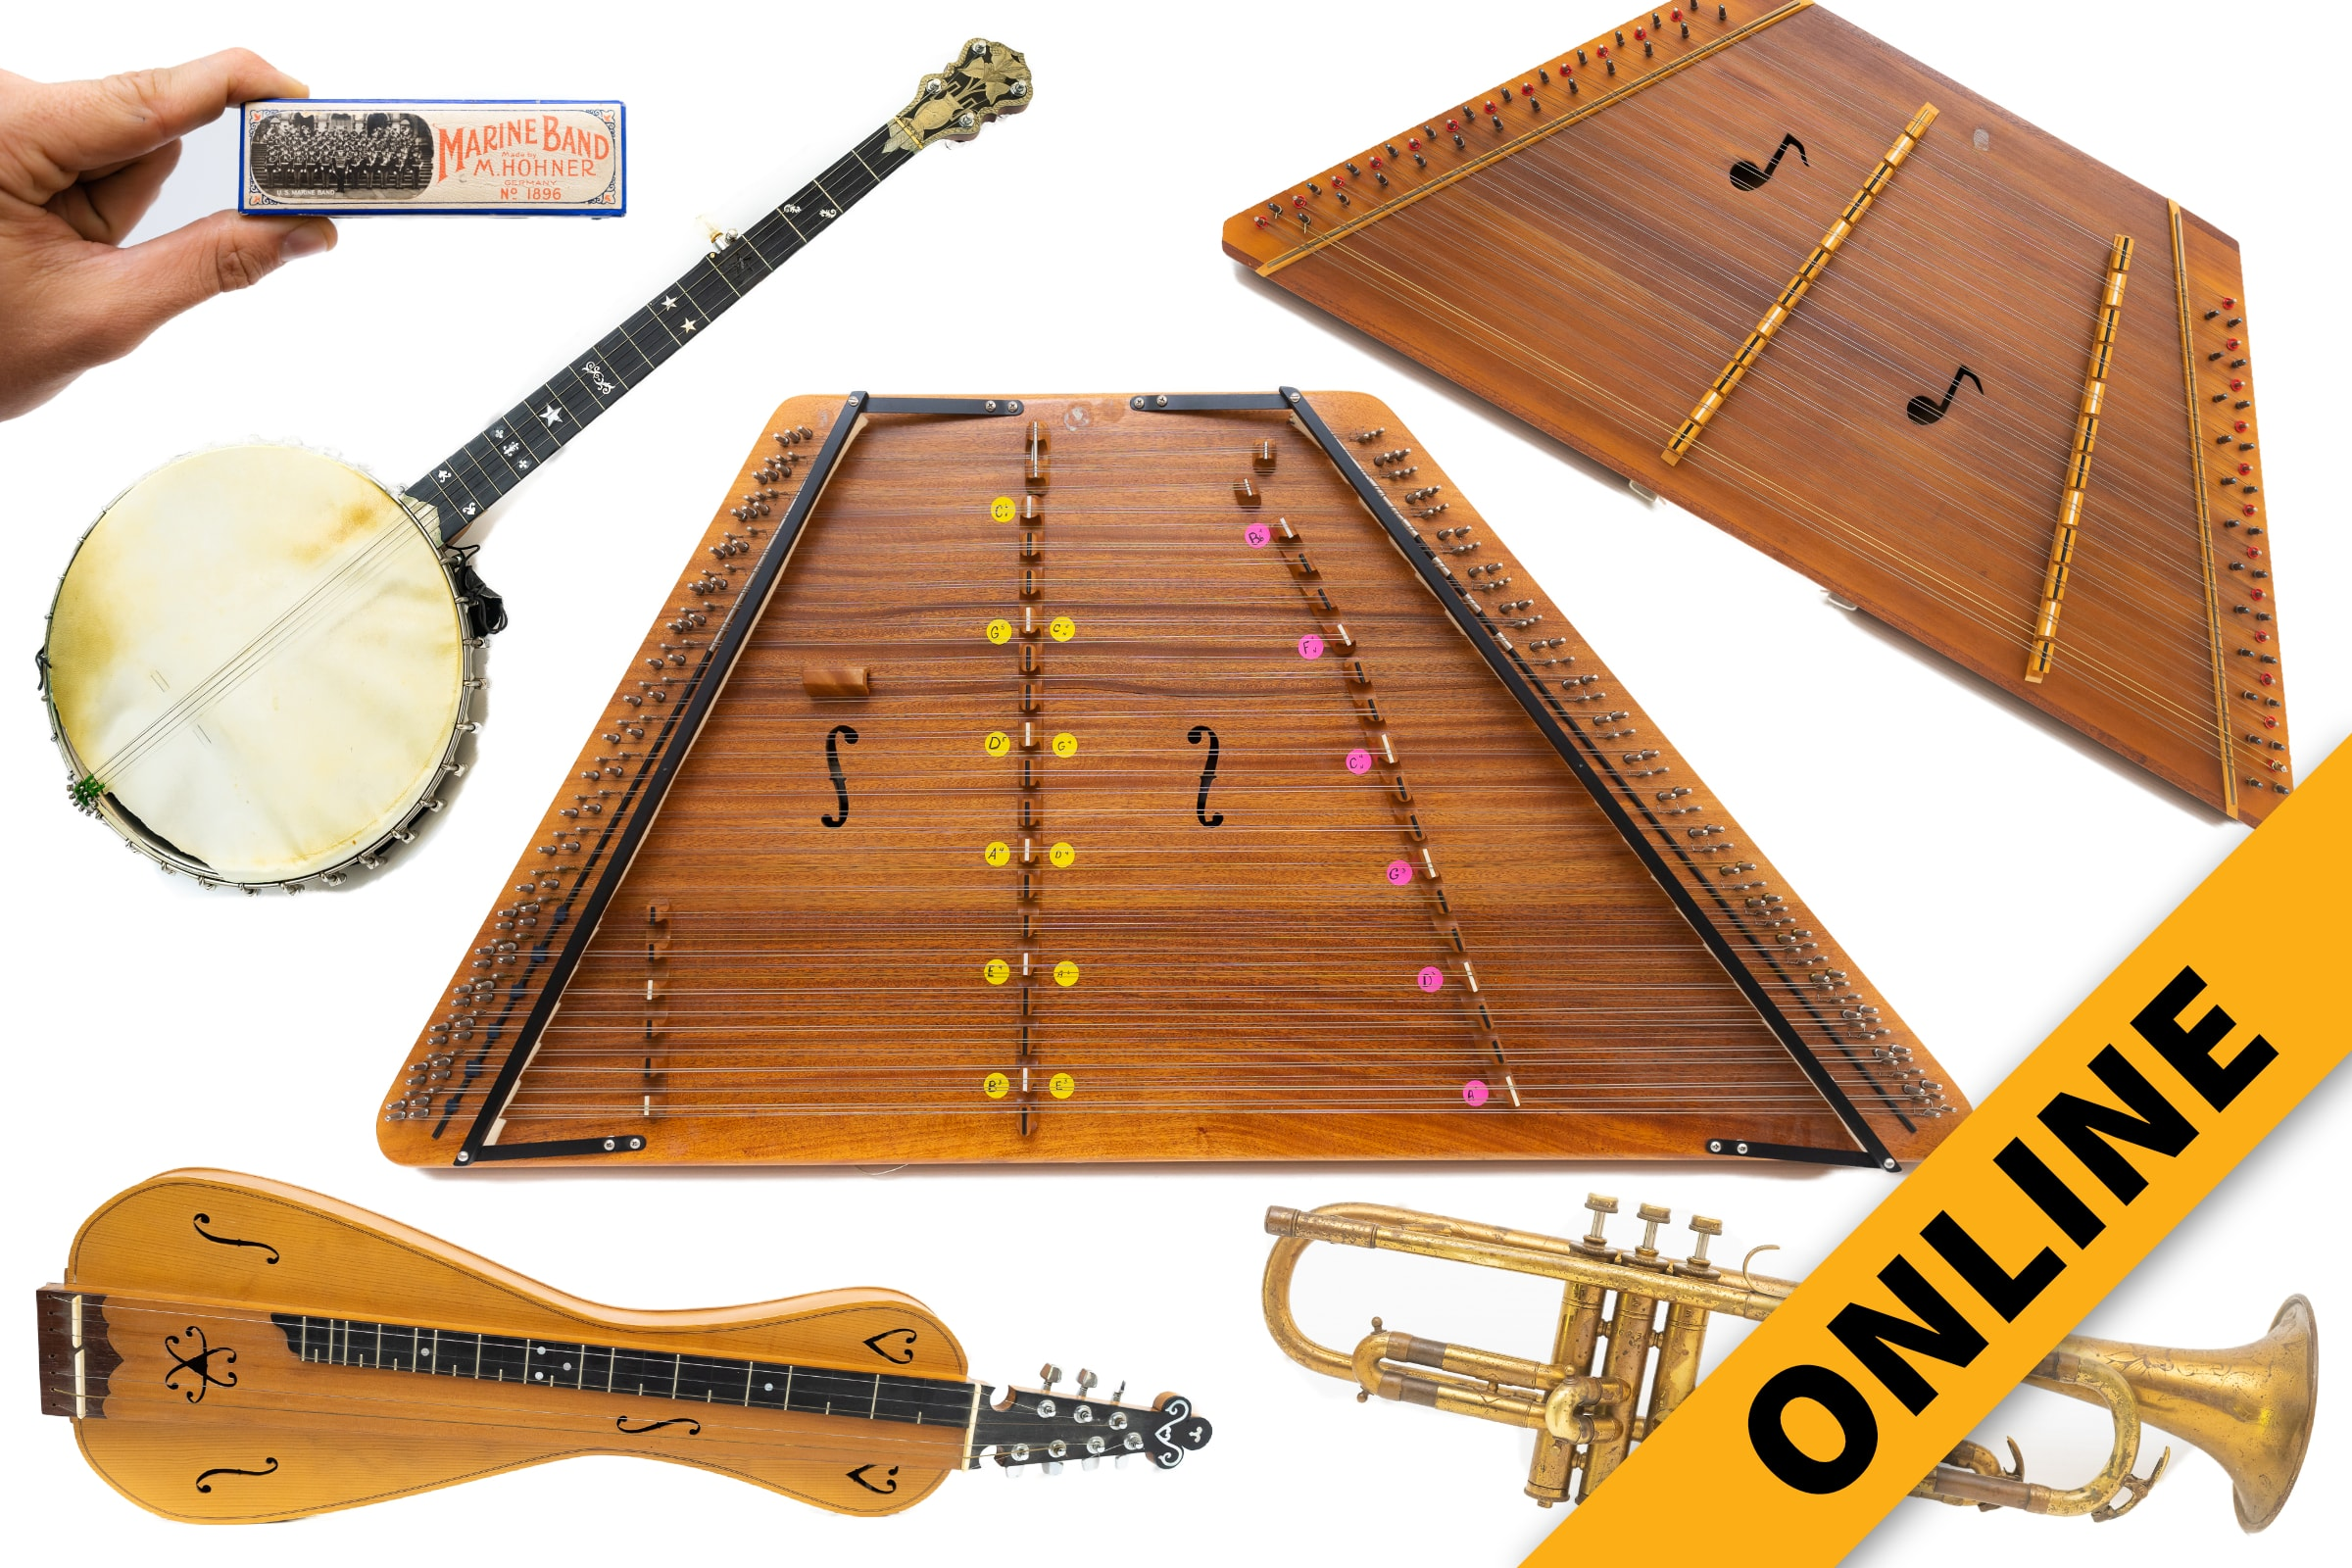 Vintage Musical Instrument Online Auction